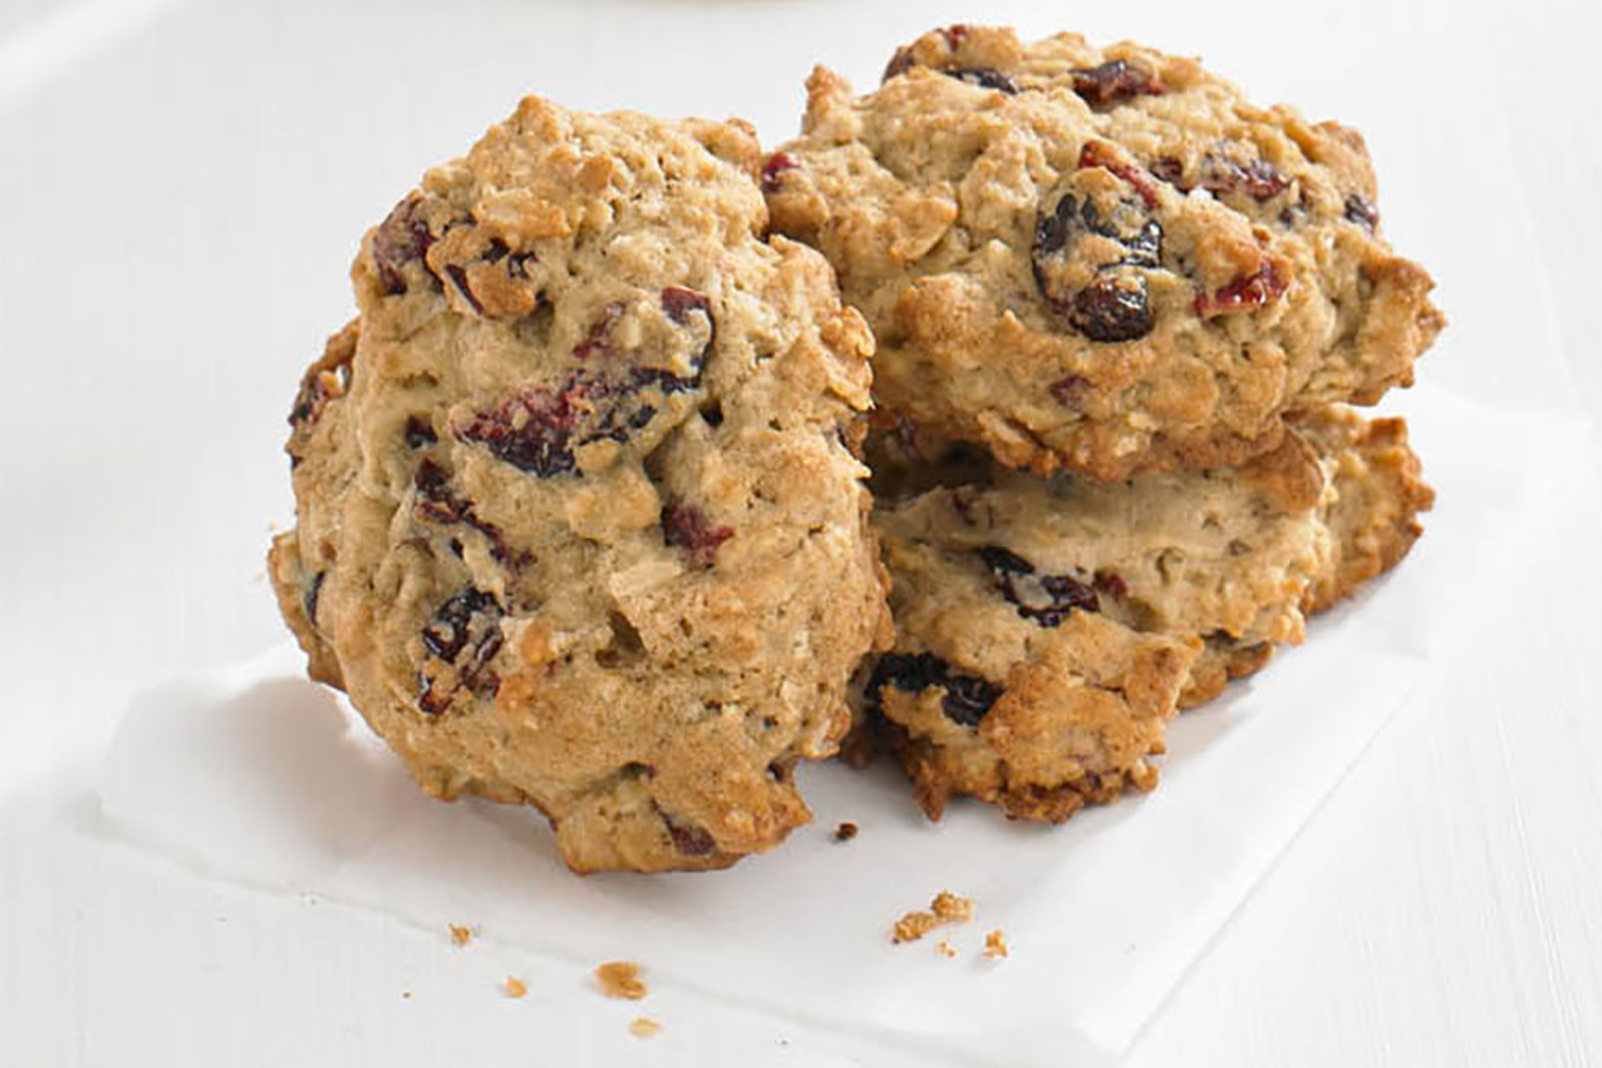 Cranberry Oatmeal Snack Cookies